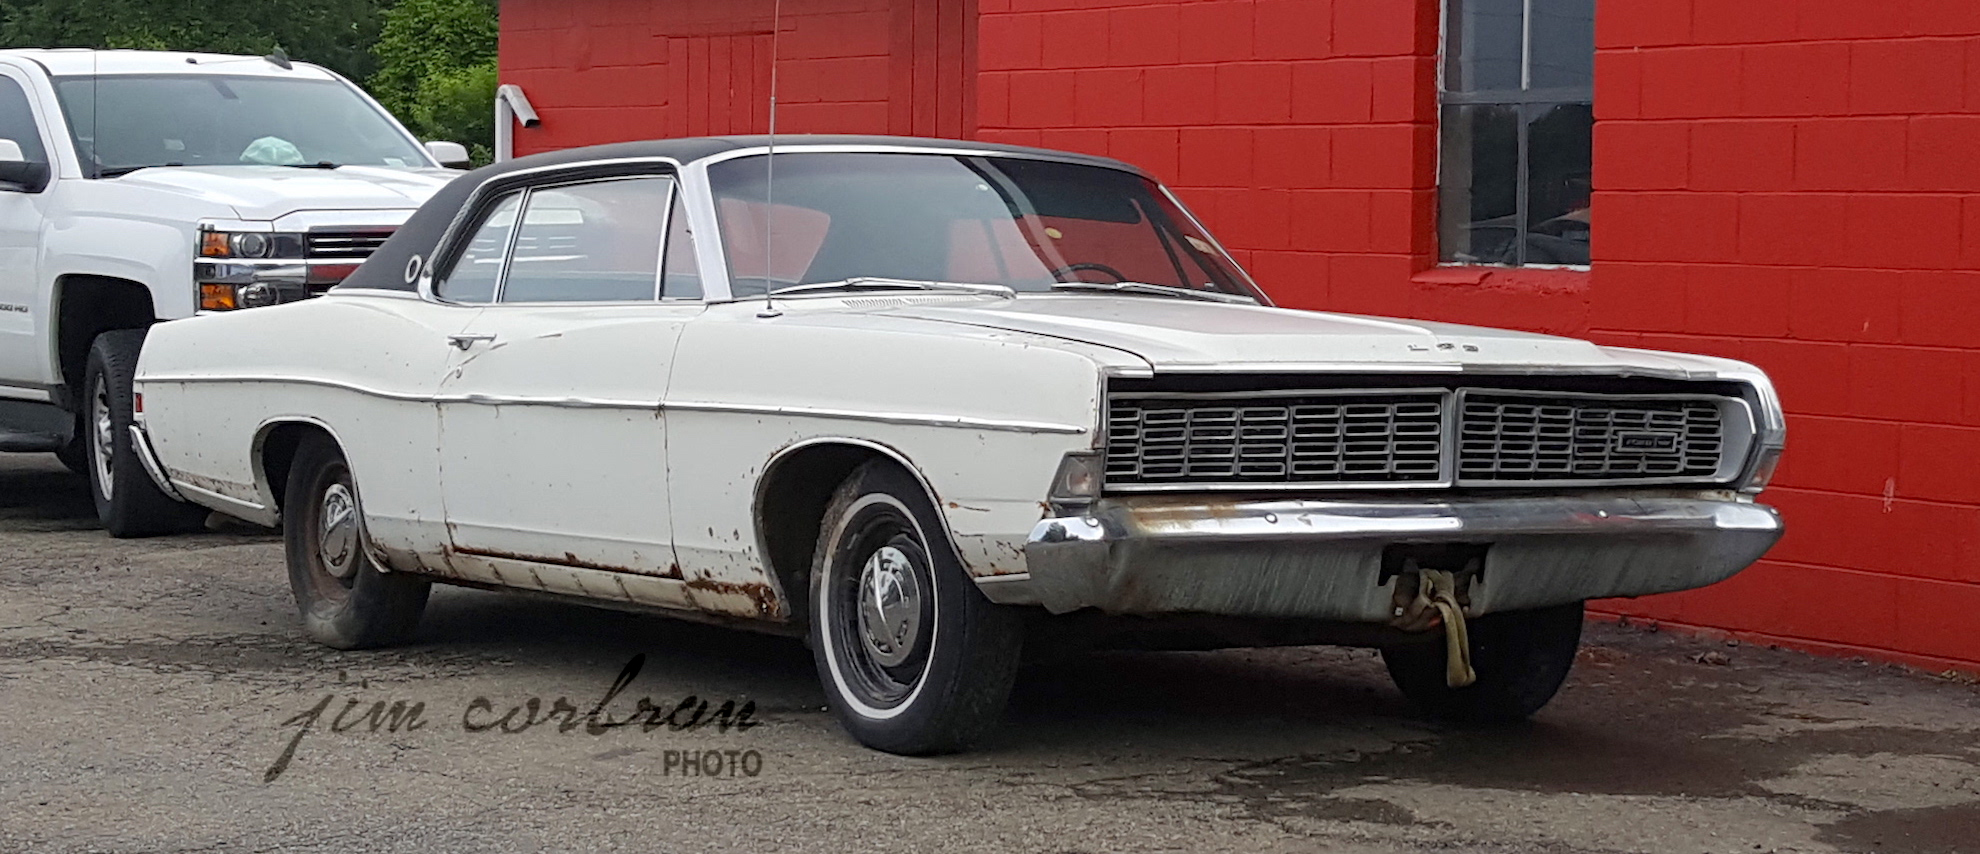 RealRides of WNY - 1968 Ford LTD